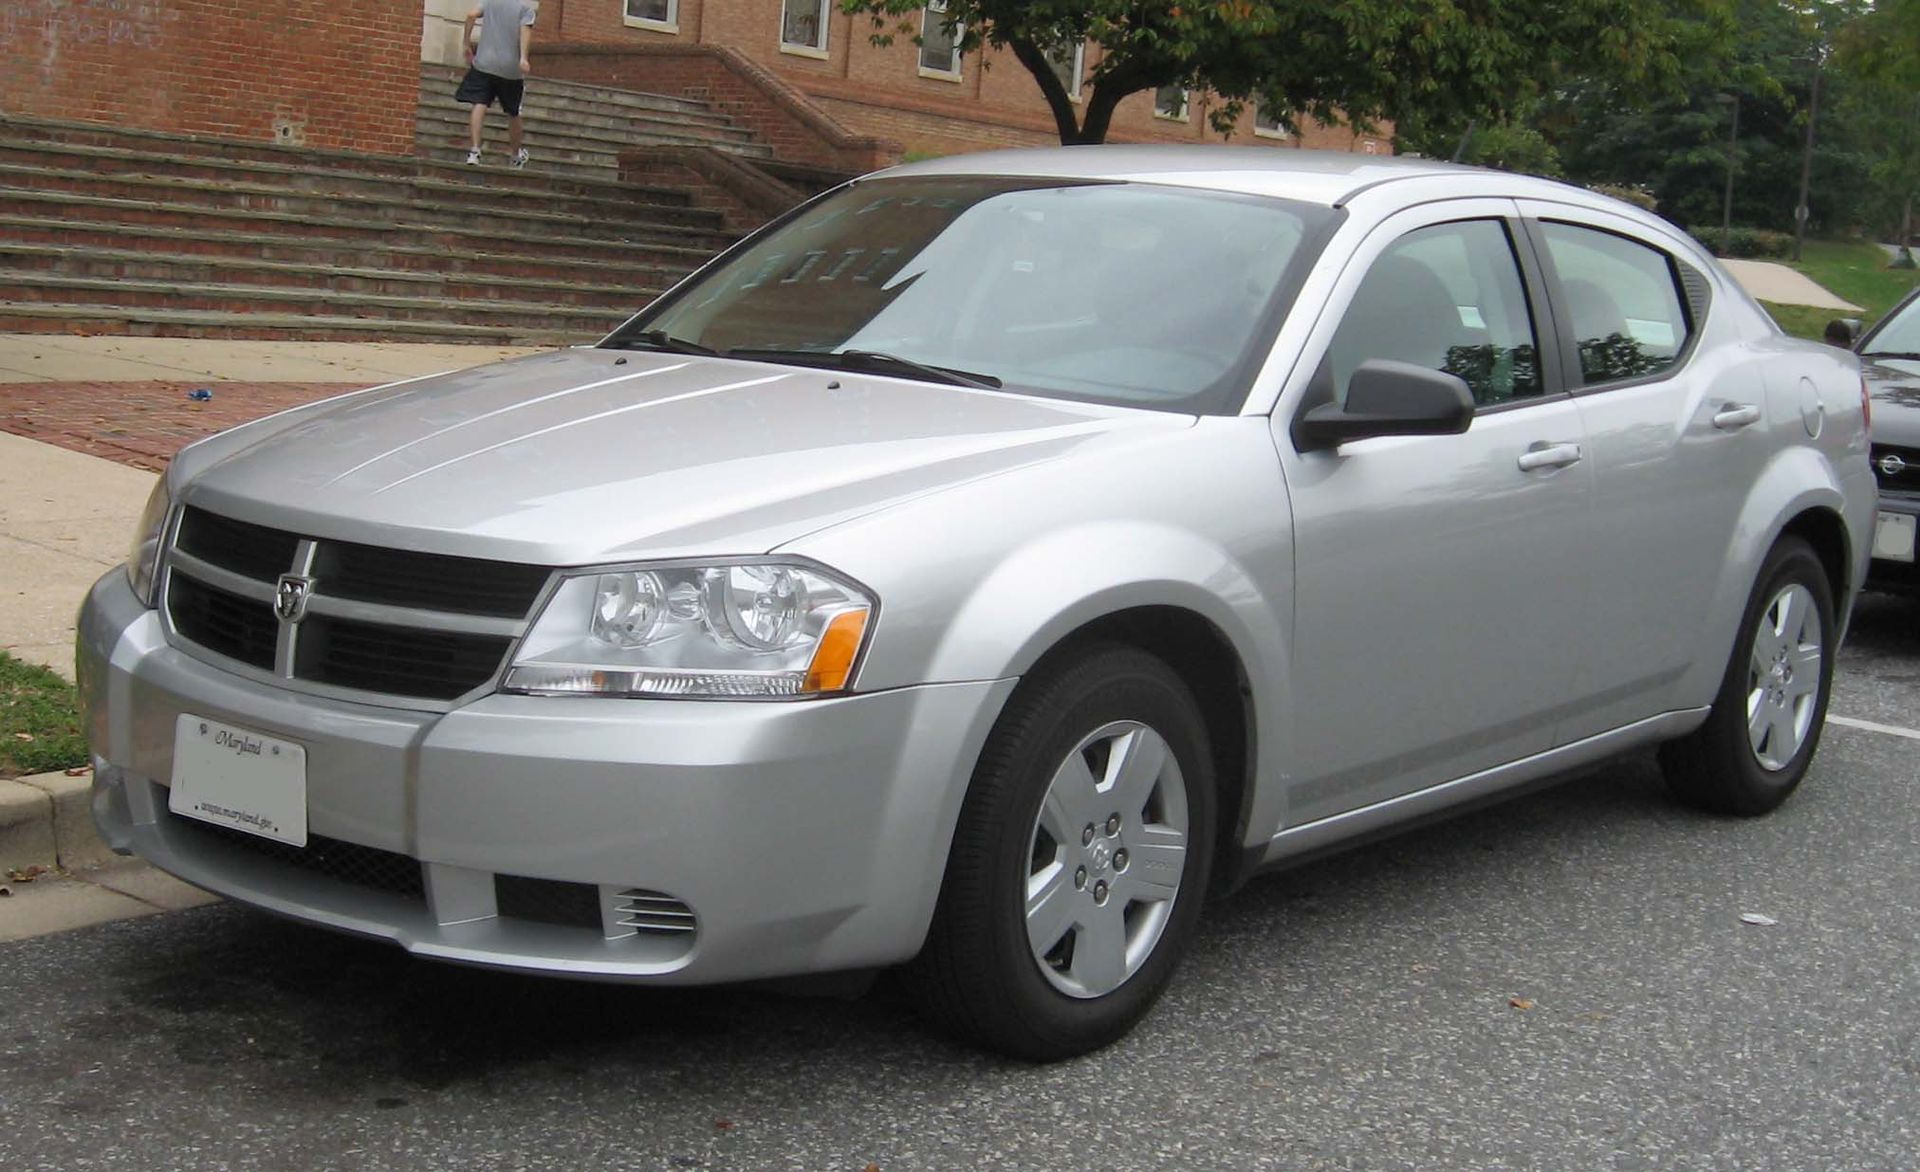 Dodge Avenger - Wikipedia